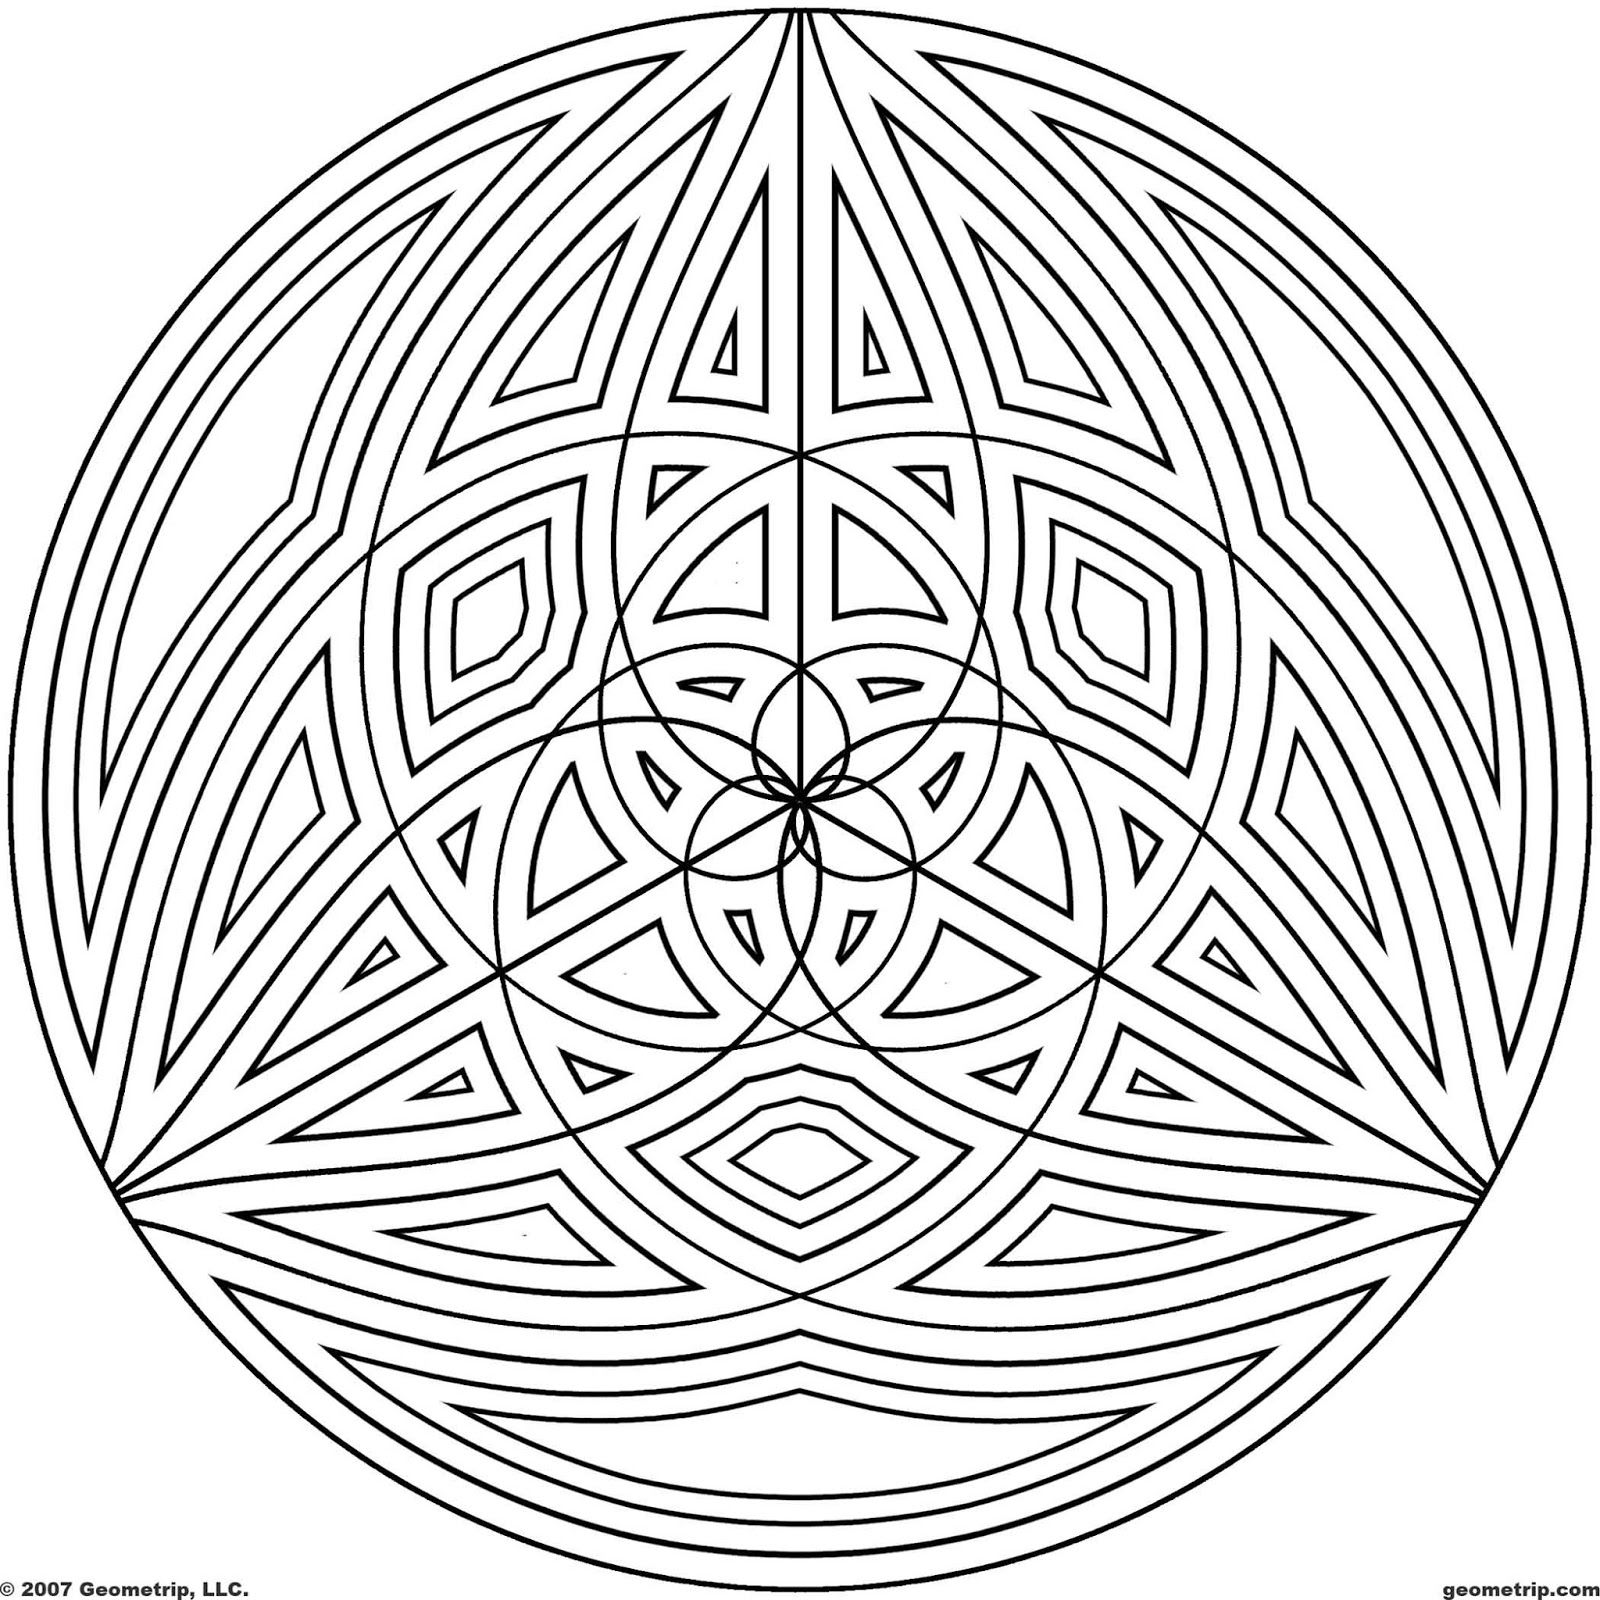 Geometric shape coloring pages coloring home for Geometric coloring pages online